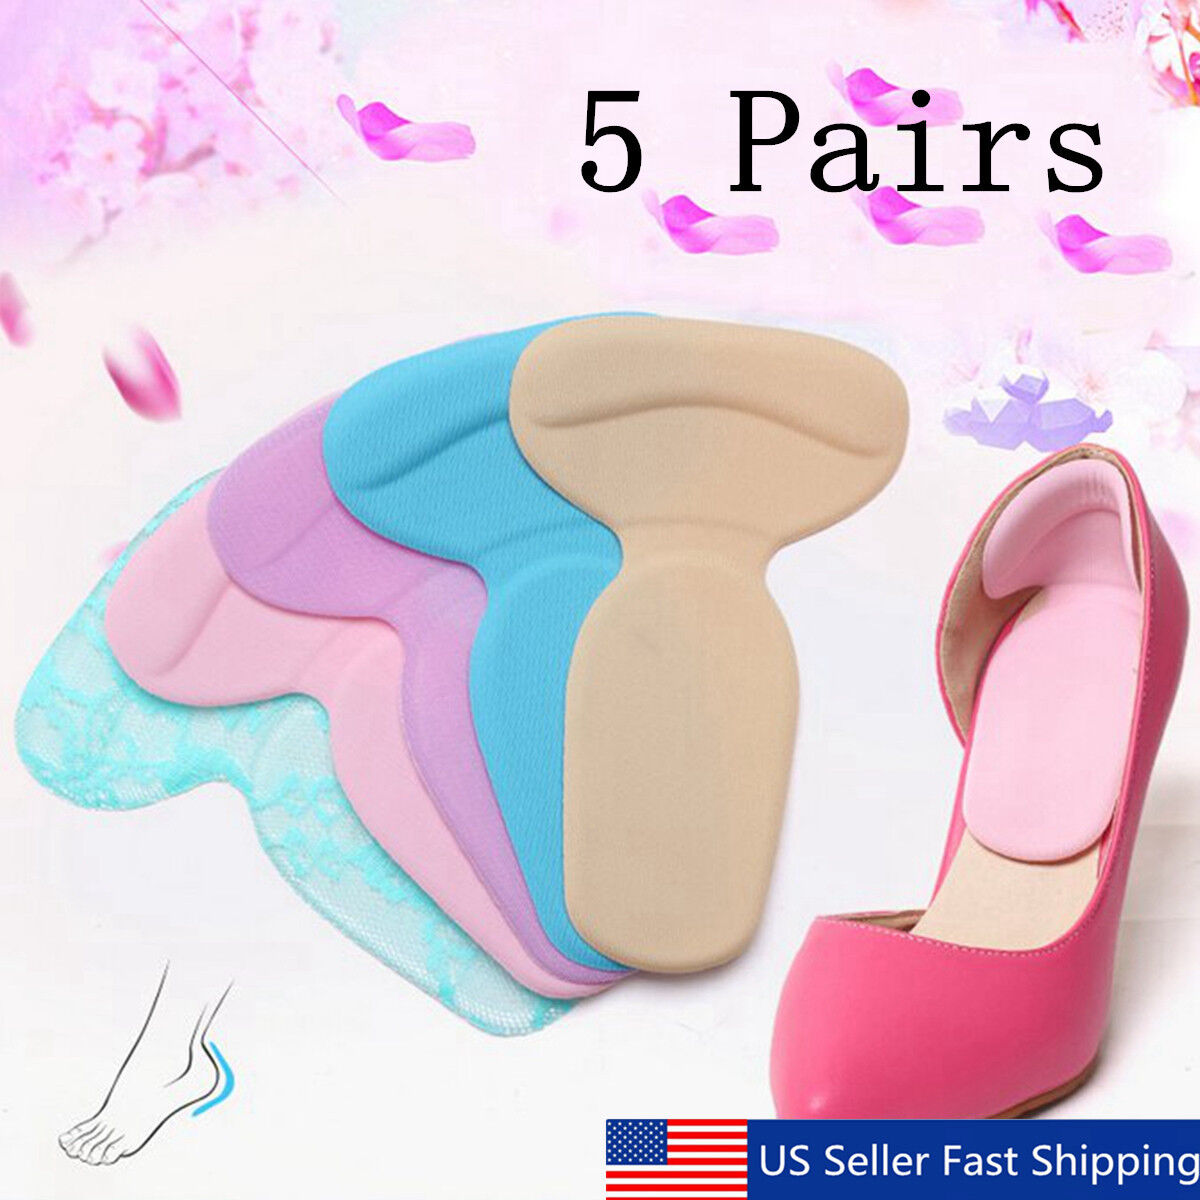 Silicone Gel High Heel Liner Grip Cushion Protector Foot Care Shoe Insole   US! Clothing & Shoe Care